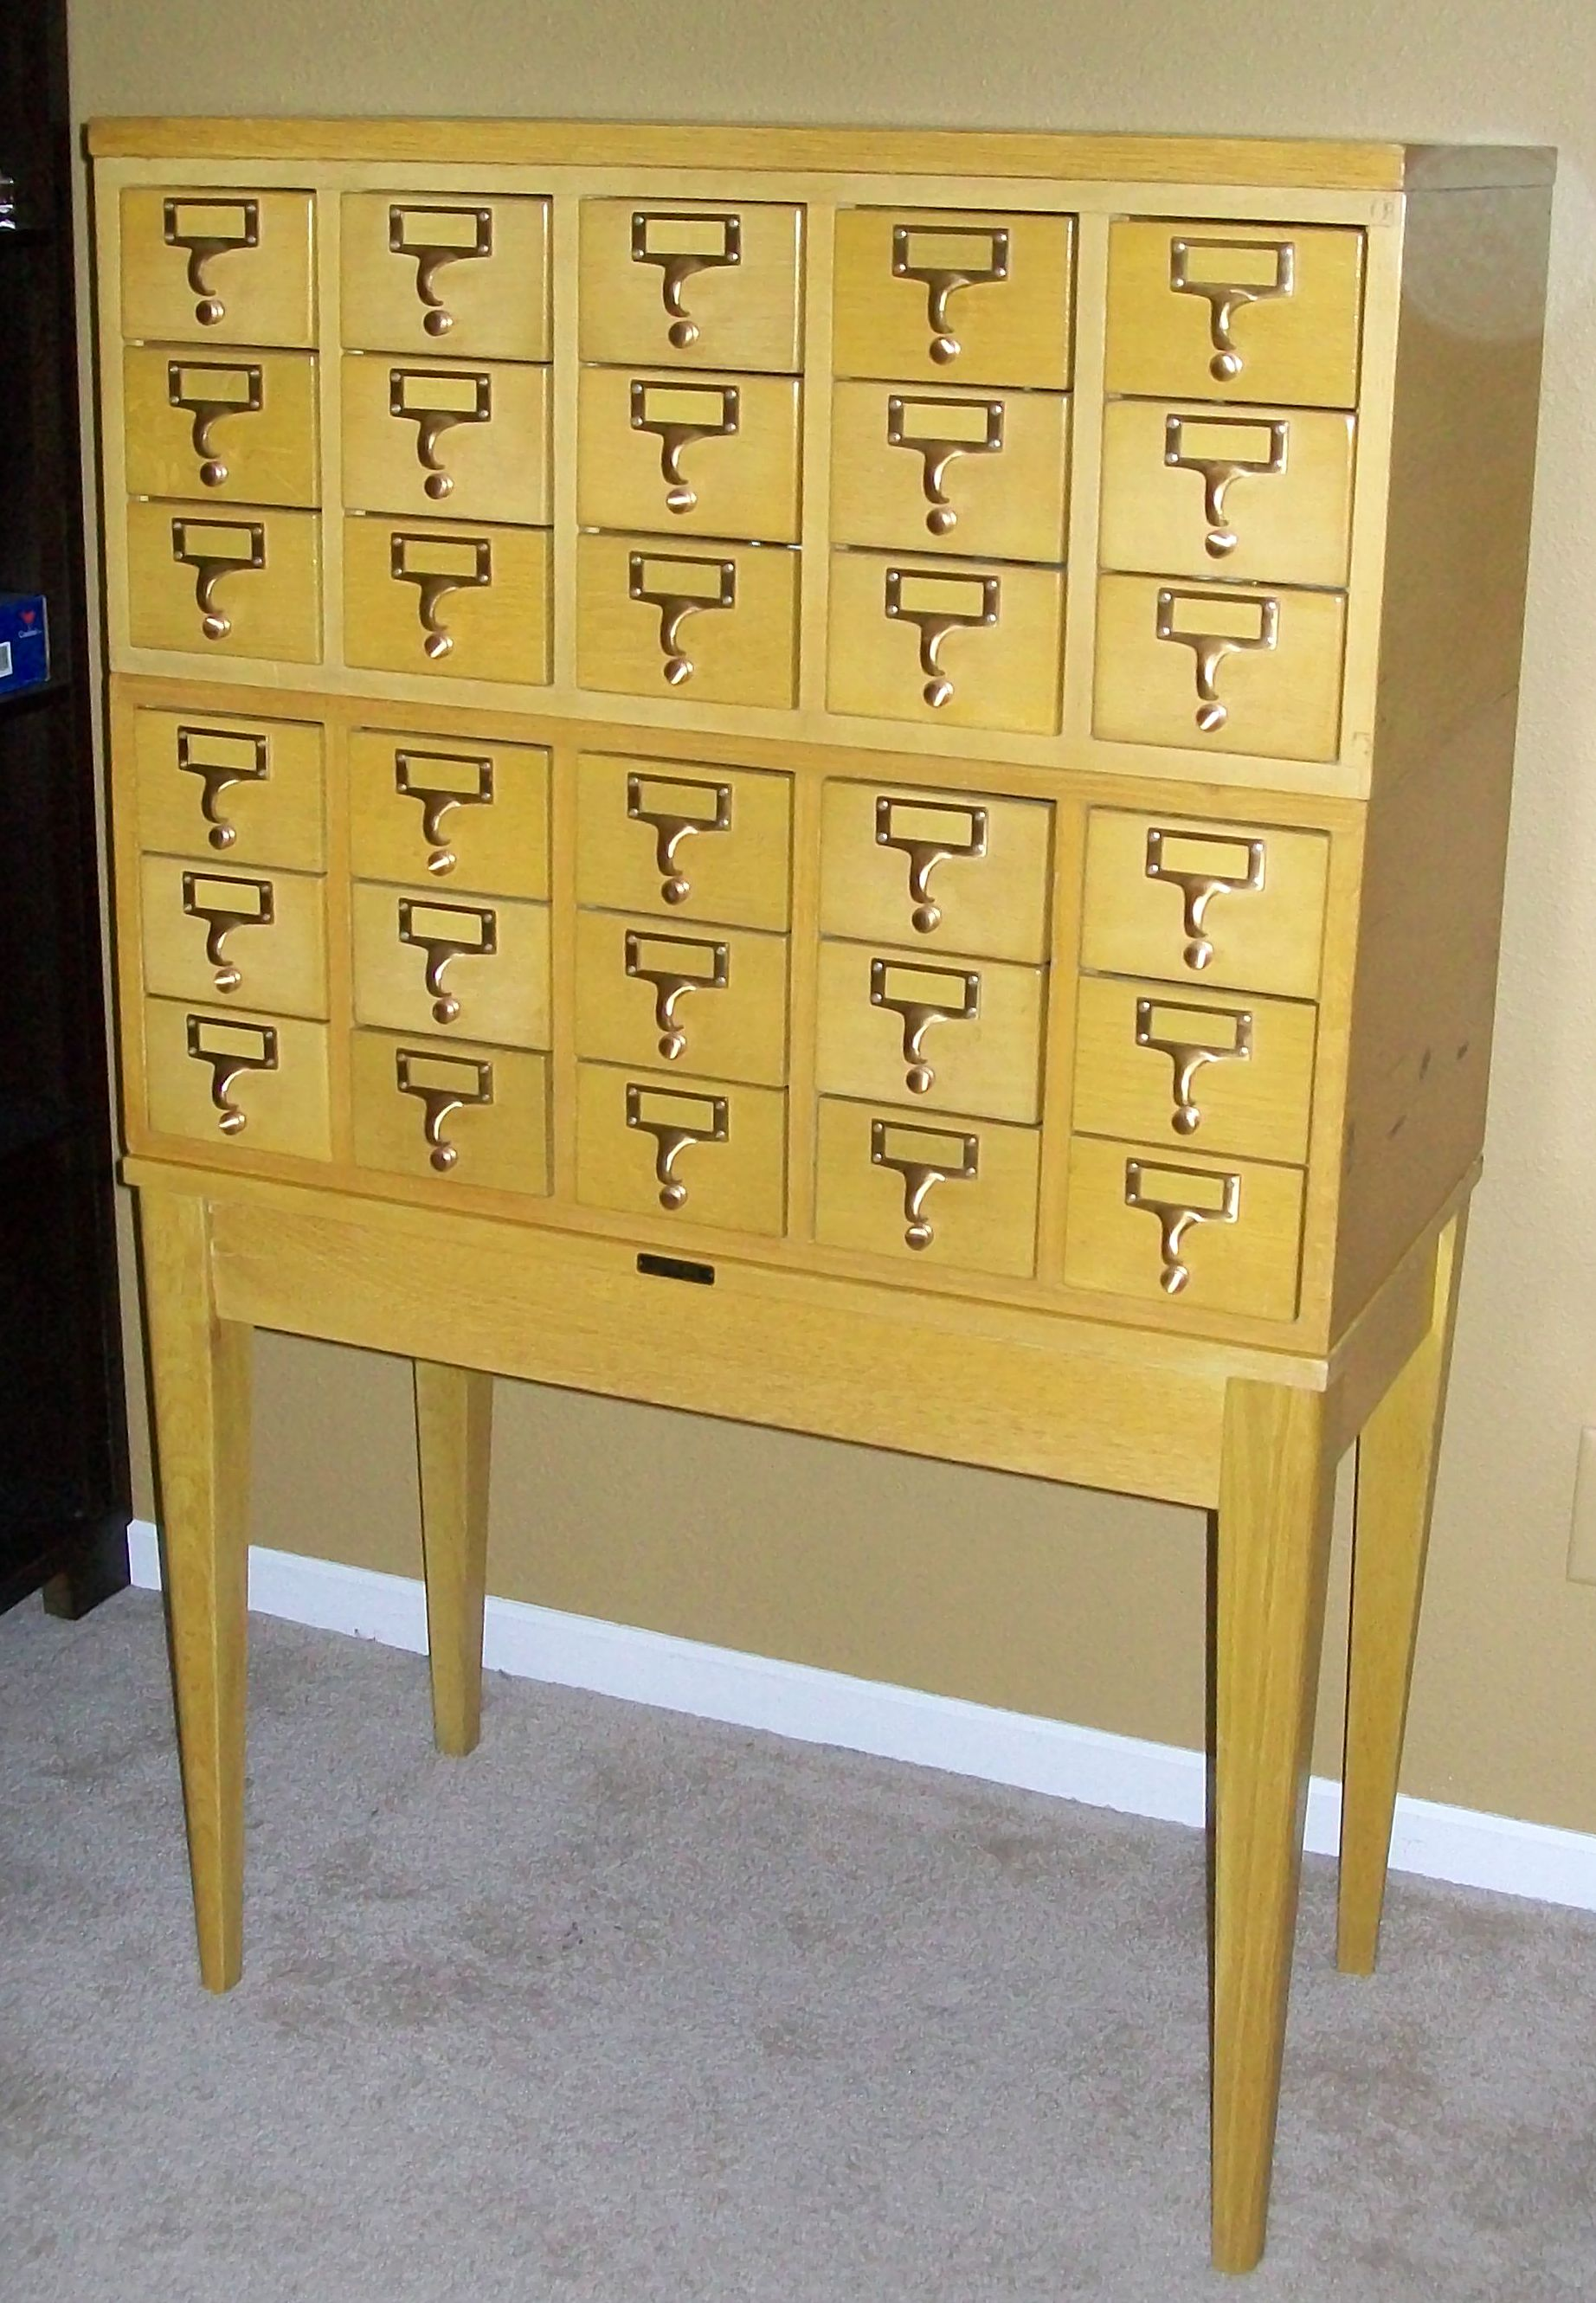 Photo Library Card Catalog Cabinet For Scraproom Storage